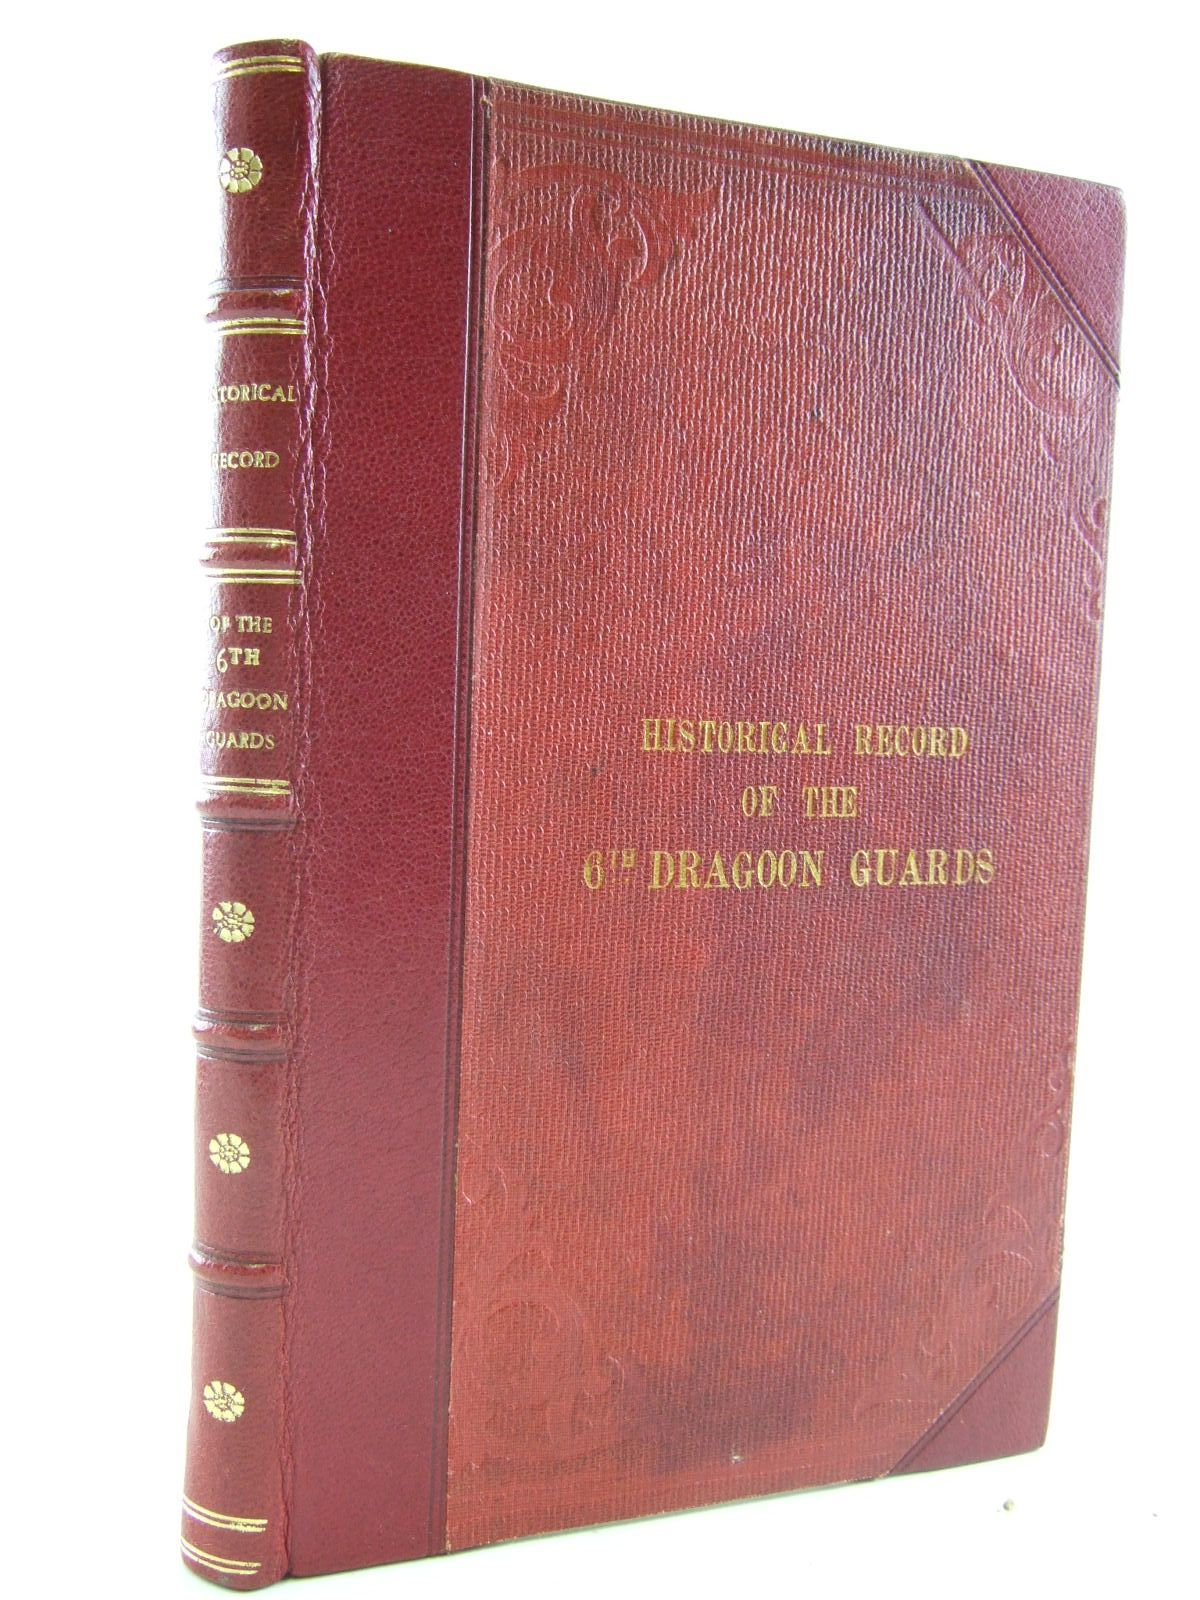 Photo of HISTORICAL RECORD OF THE SIXTH REGIMENT OF DRAGOONS GUARDS OR THE CARABINEERS written by Cannon, Richard published by Longman, Orme And Co., Clowes And Sons (STOCK CODE: 1706933)  for sale by Stella & Rose's Books